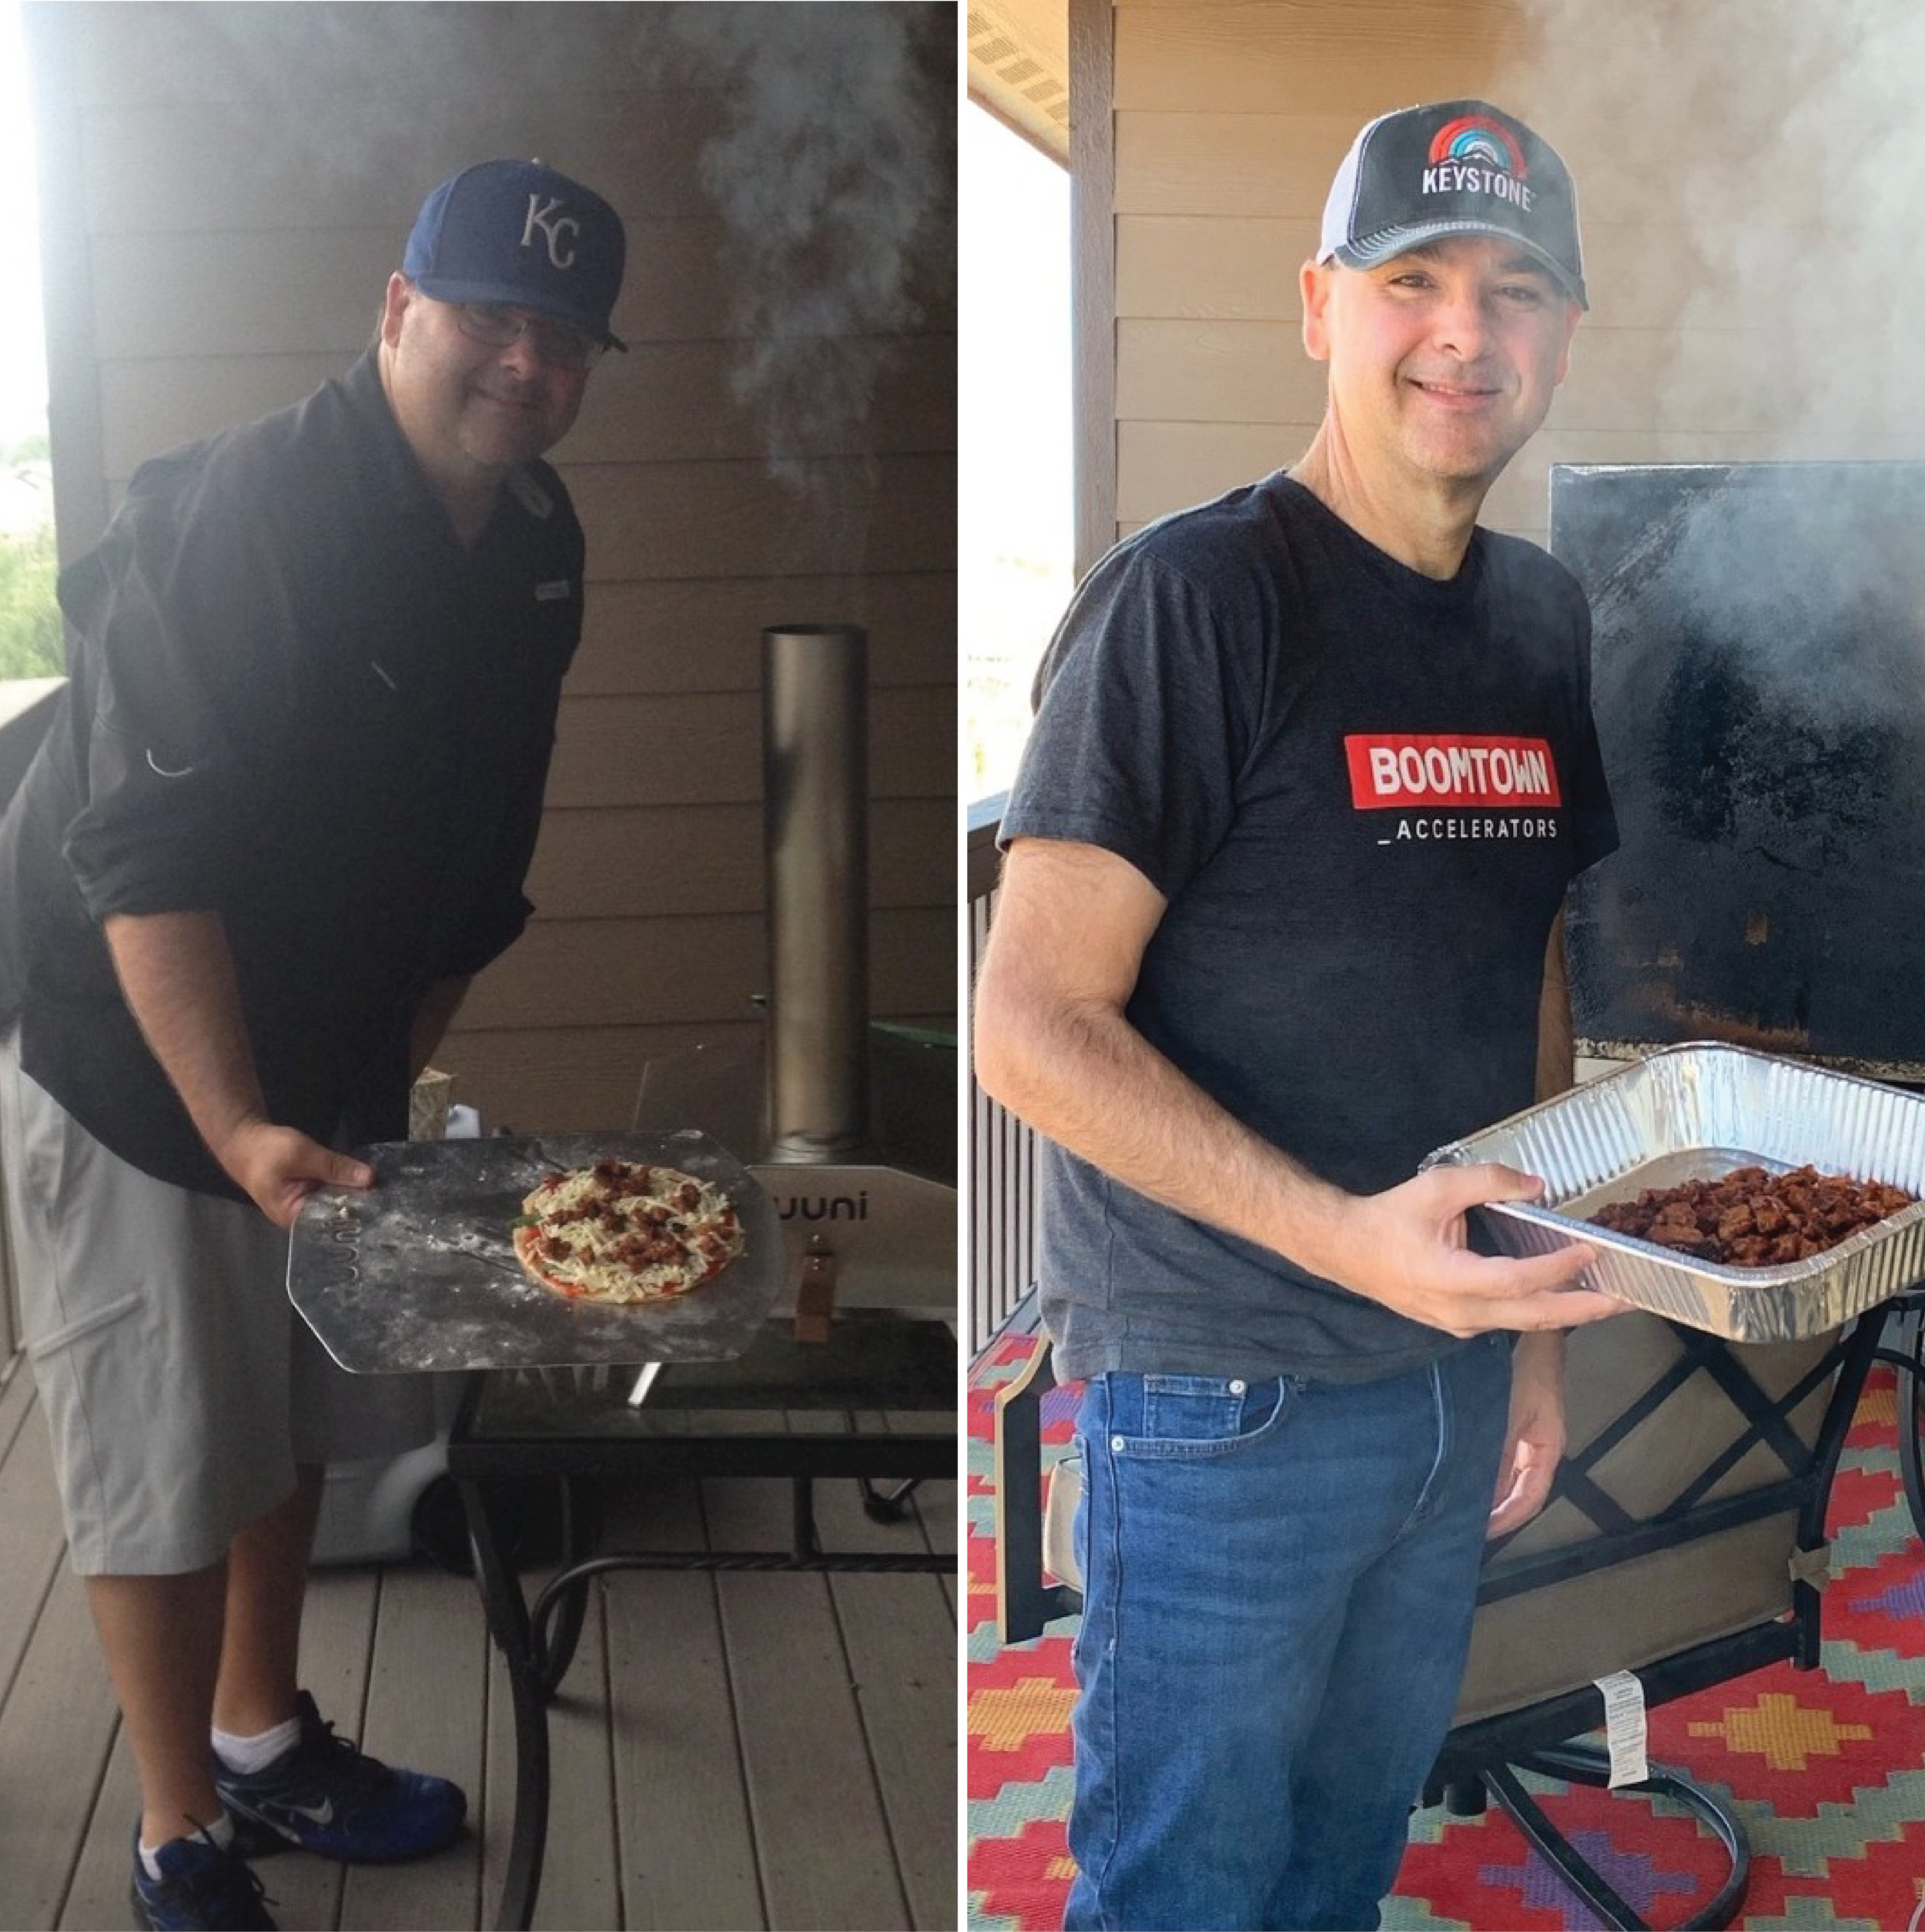 - At only age 44, Brian was suddenly diagnosed with six life-threatening diseases and labelled morbidly obese.While determined to beat death, he refused gastric bypass surgery and instead relied on his 30 years' BBQ experience and his unique knowledge of plant-based food to literally heal himself.